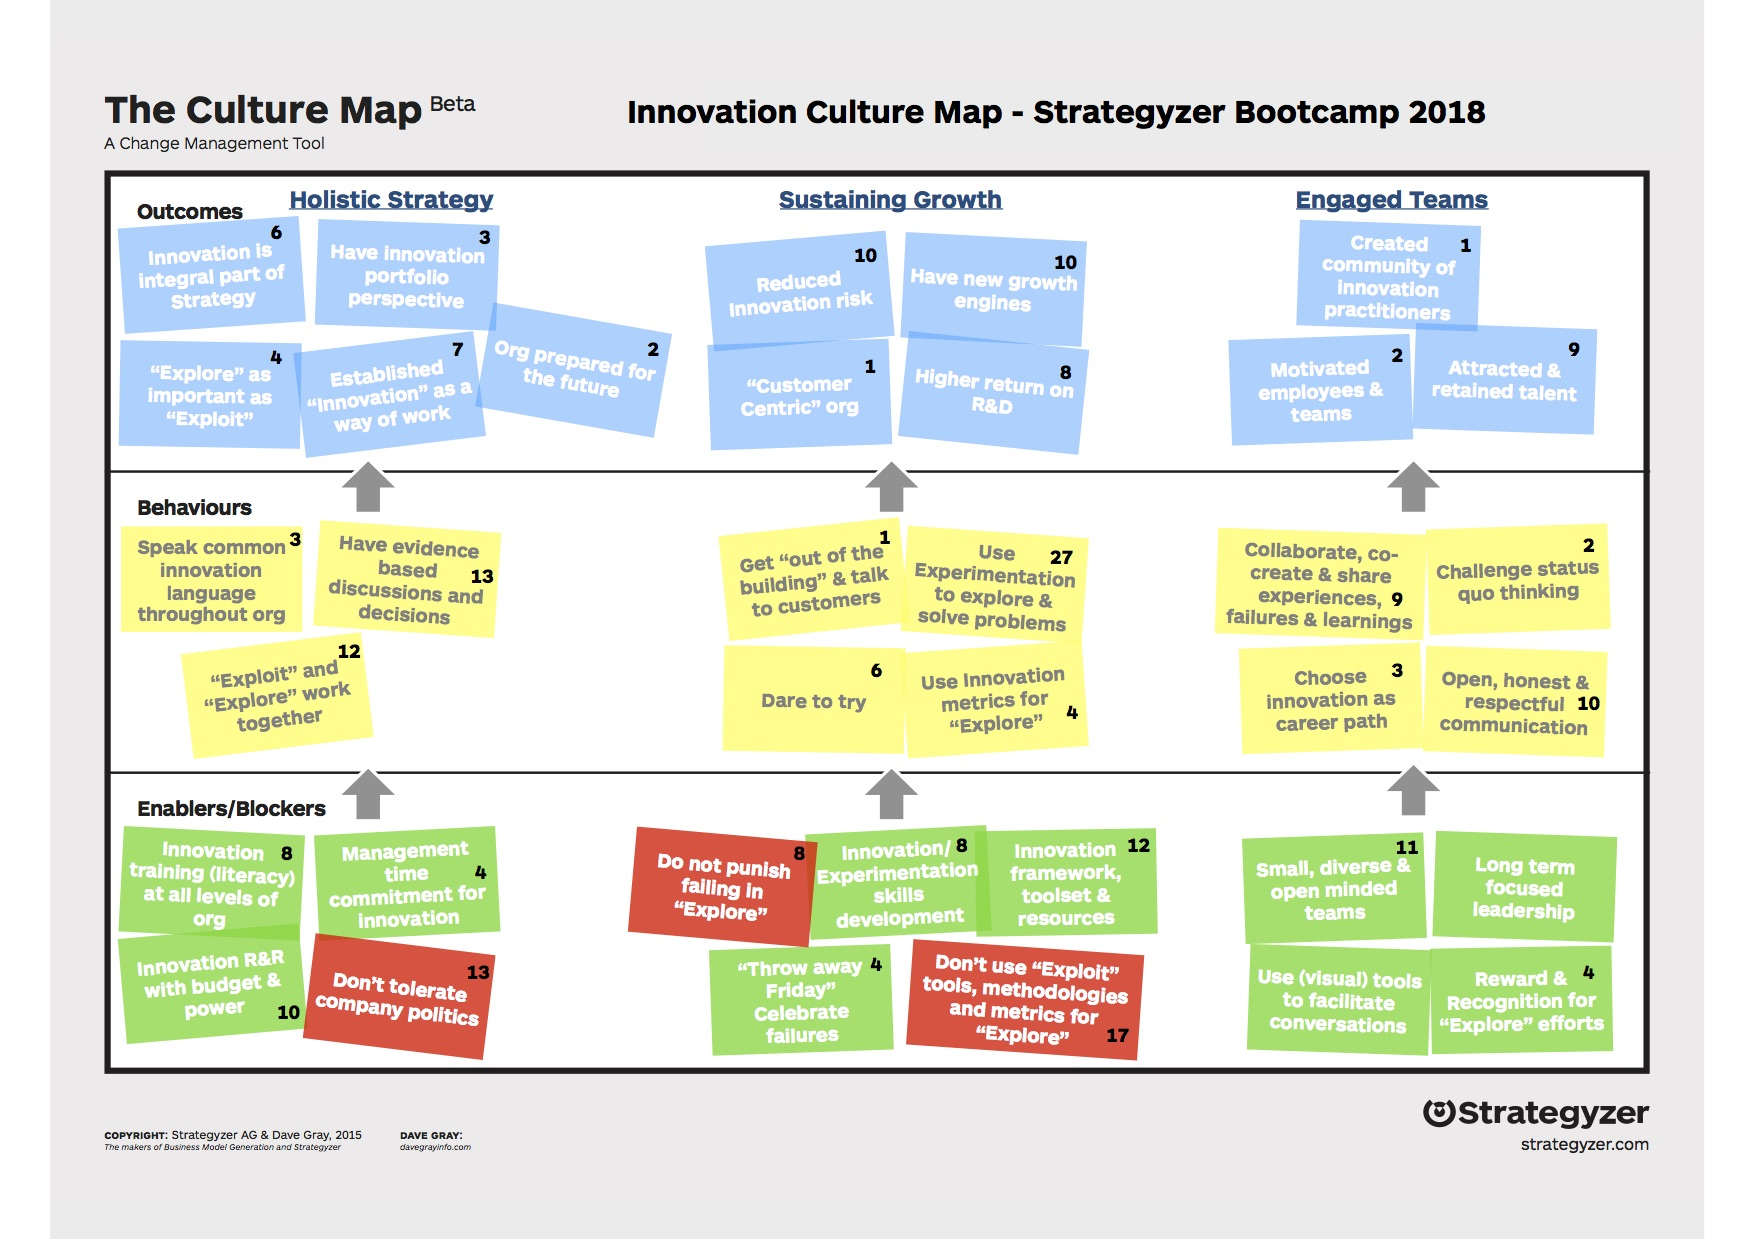 Innovation Culture Map - Strategyzer Bootcamp 2018 for blog.jpg